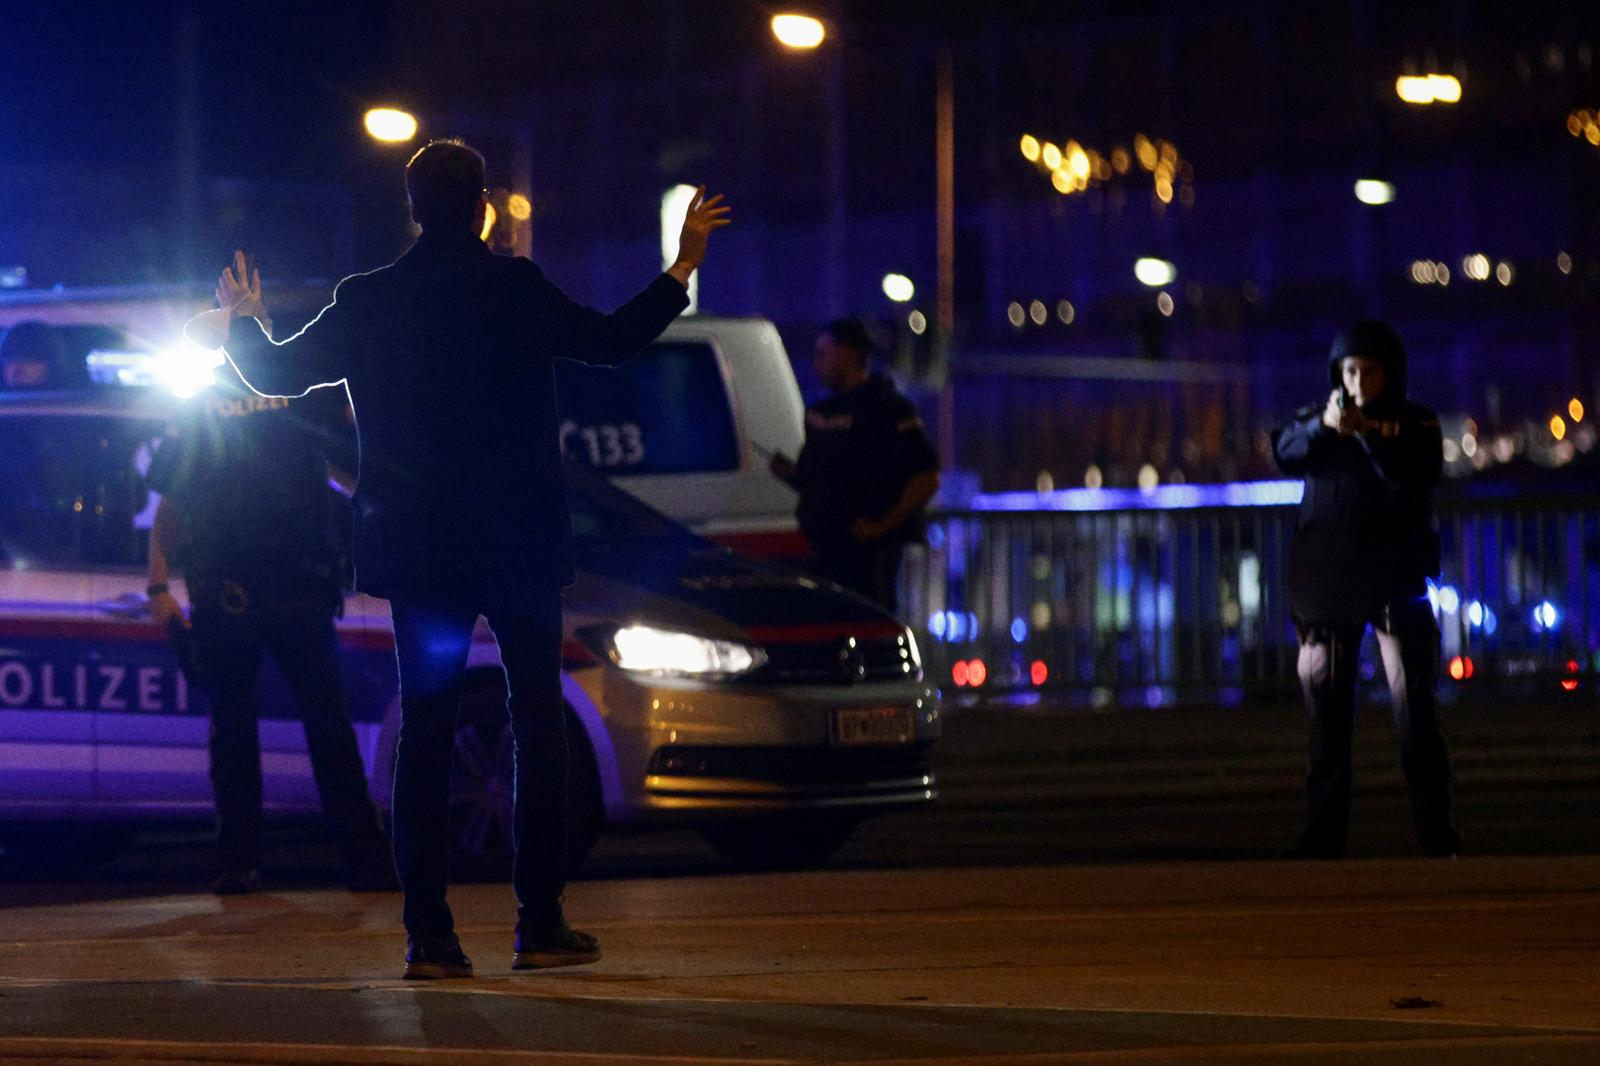 At least two killed in Vienna attack involving multiple assailants, locations